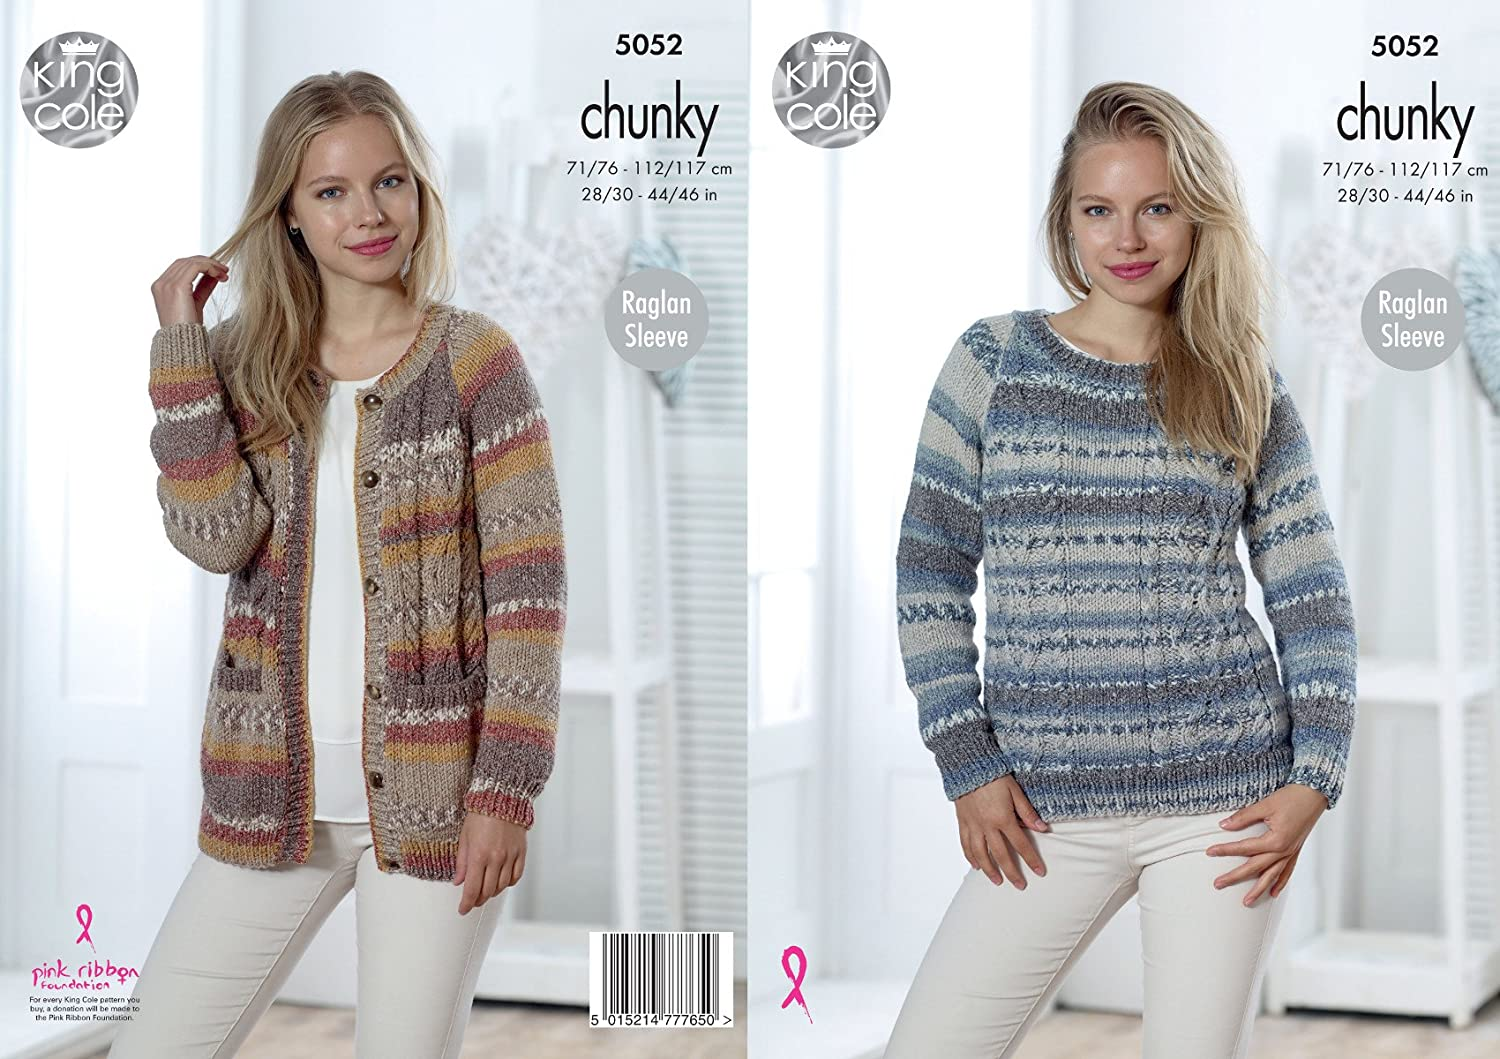 941977fcc King cole ladies chunky knitting pattern raglan sleeve cable knit cardigan  sweater kitchen home jpg 1500x1059